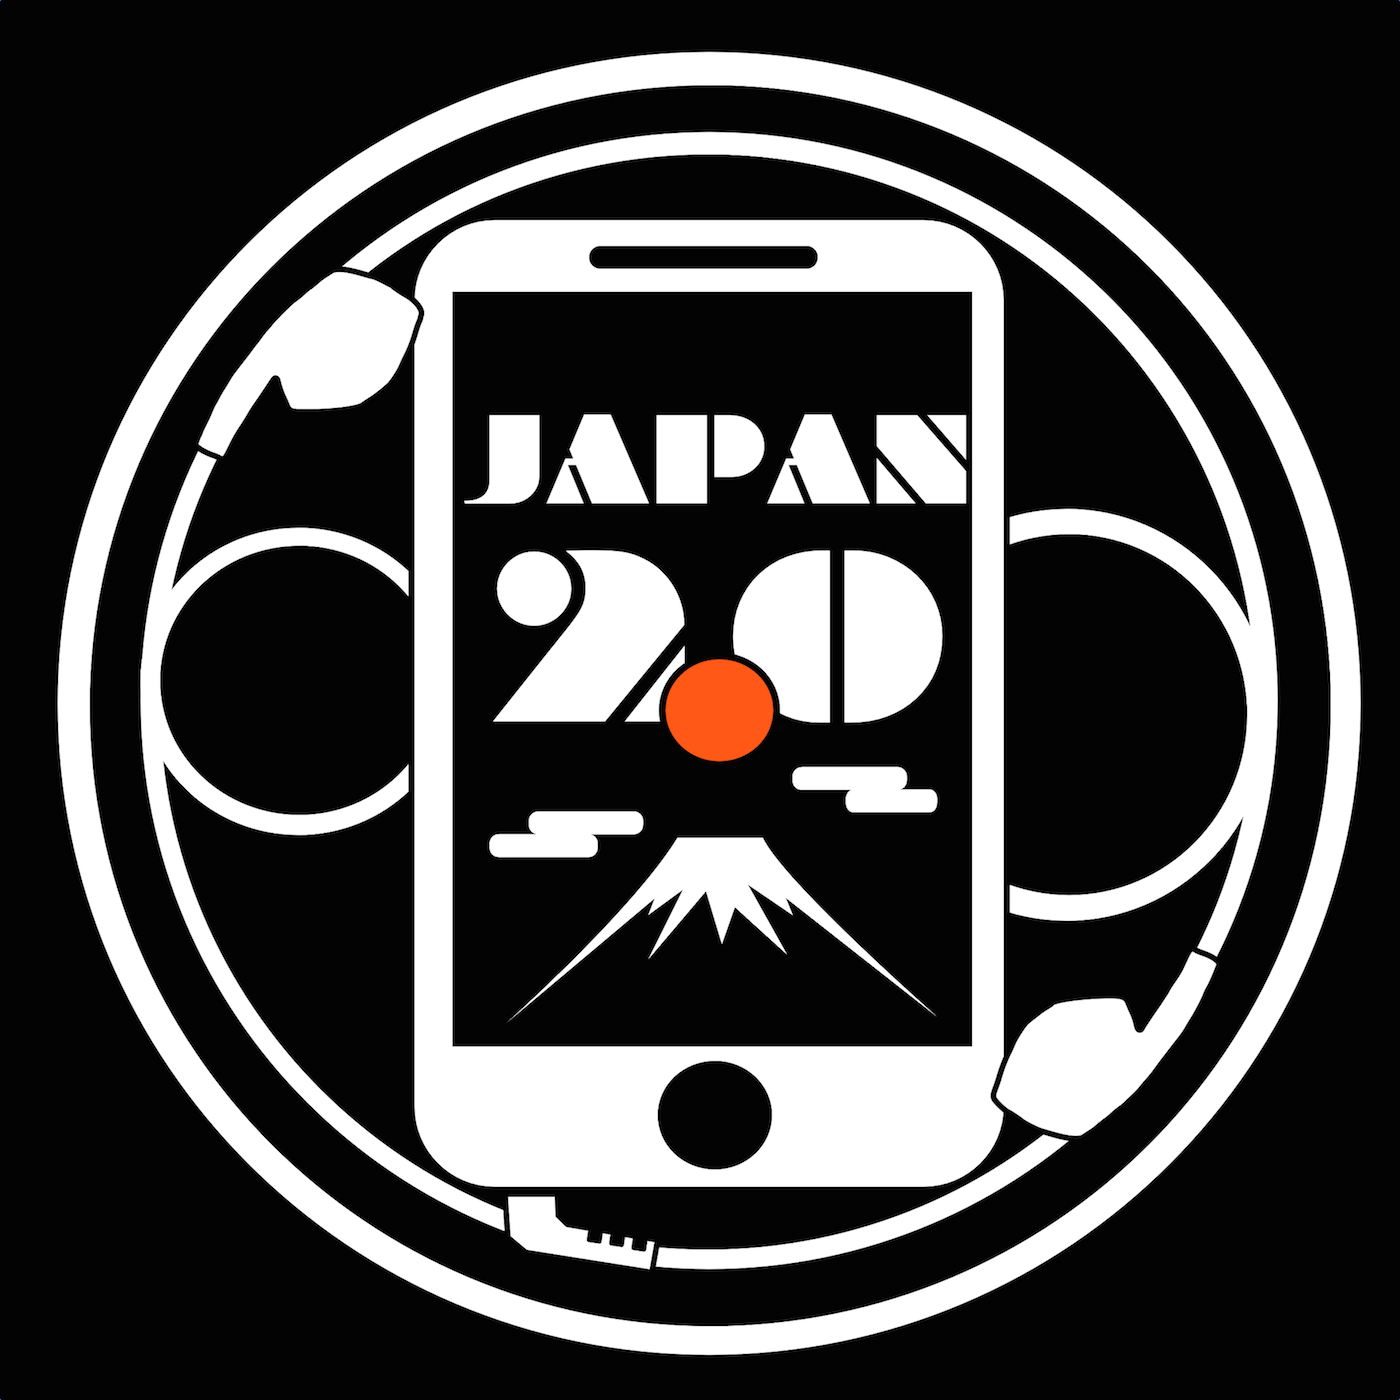 Japan 2.0 - Japanese Subculture